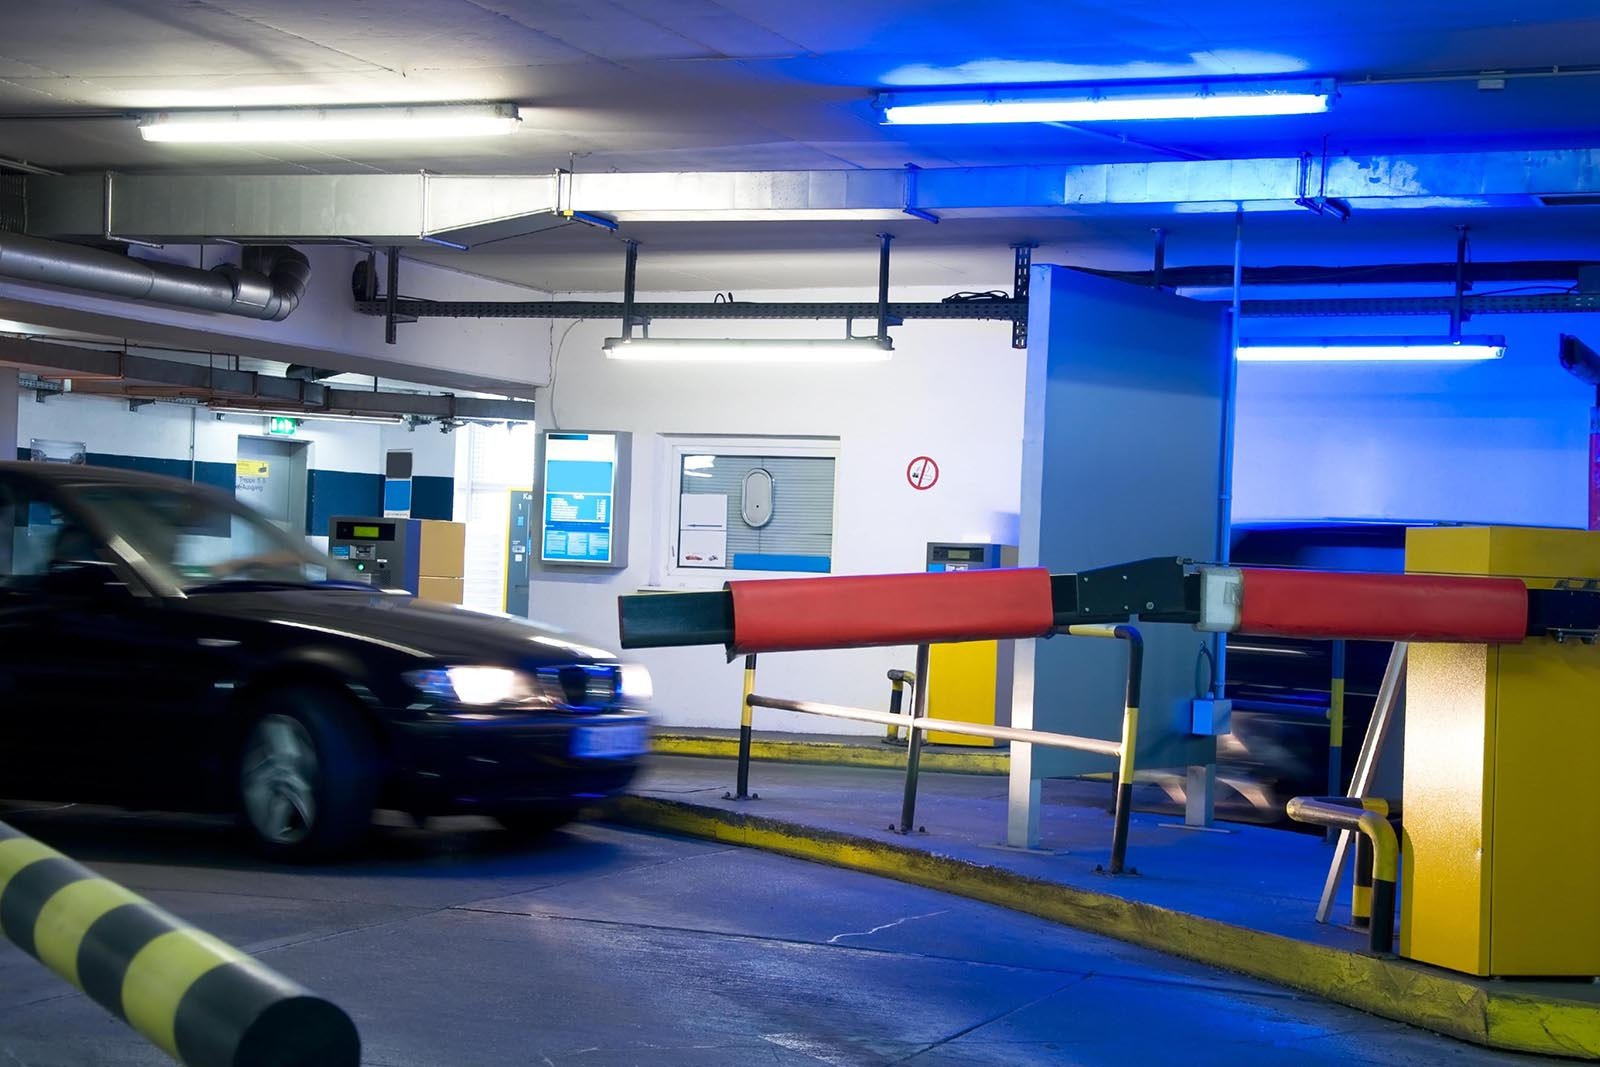 parking garage with cars